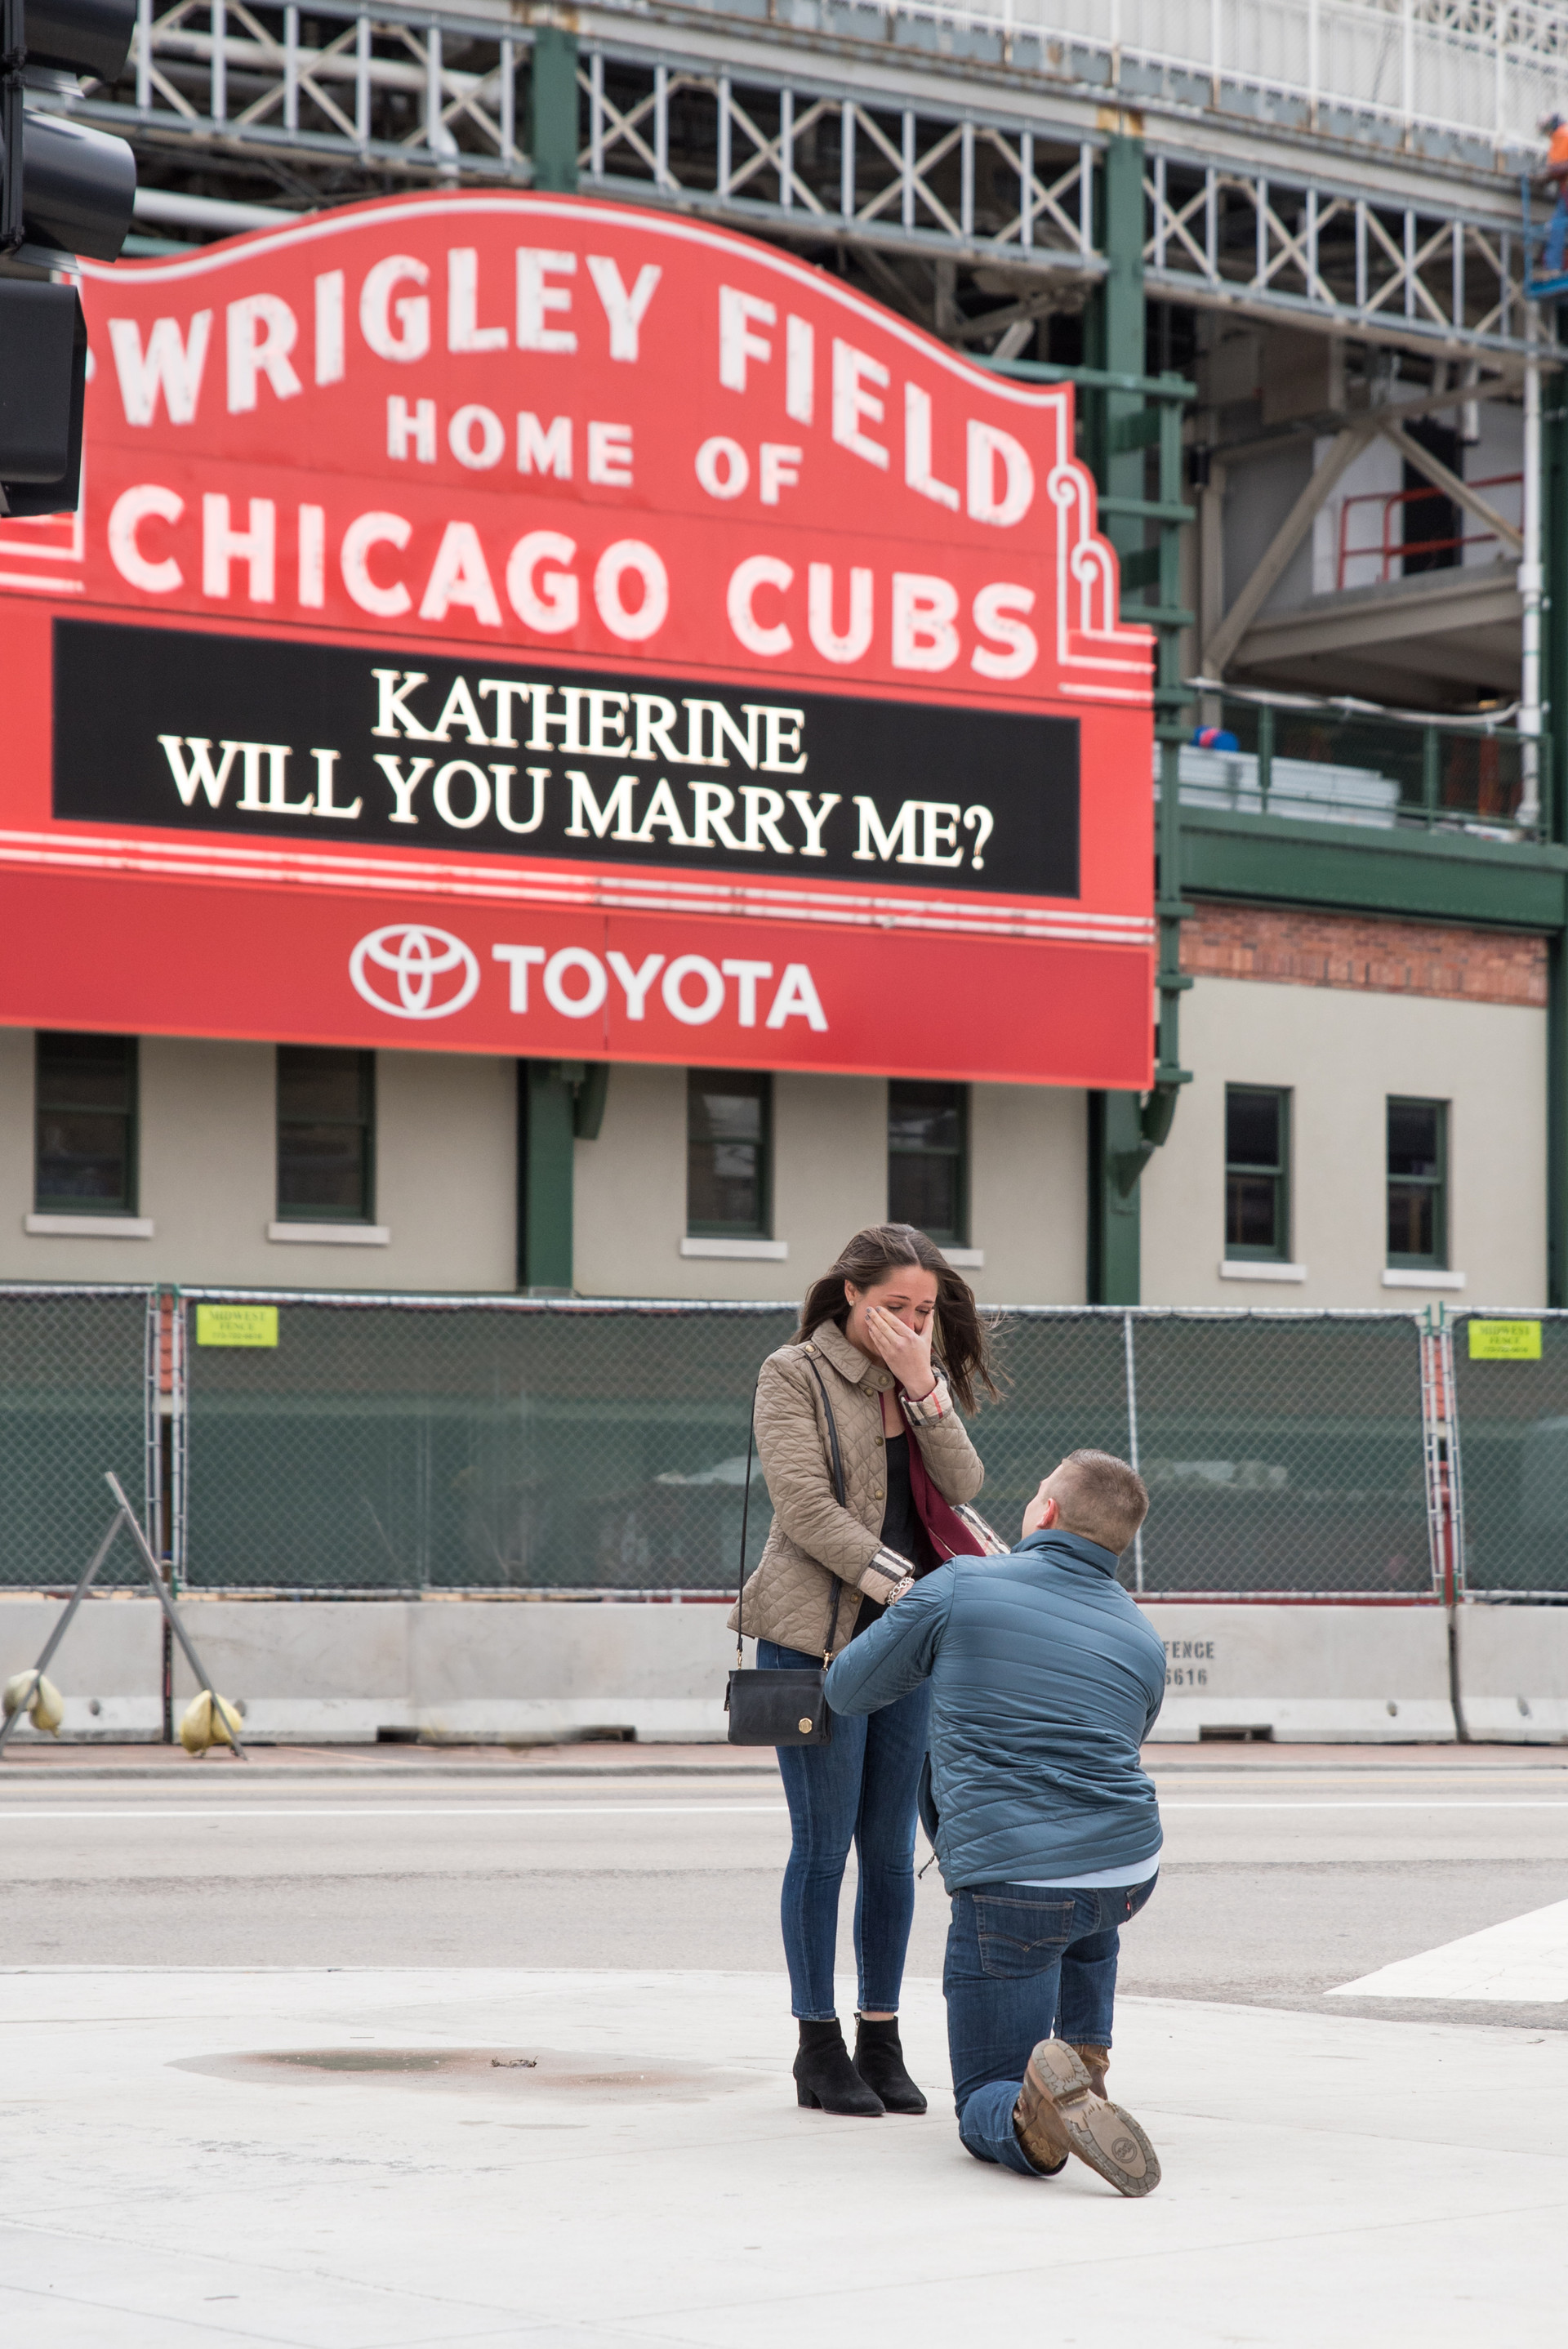 Jessica M. Photography Engagement Photographer Chicago IL Wrigley Field